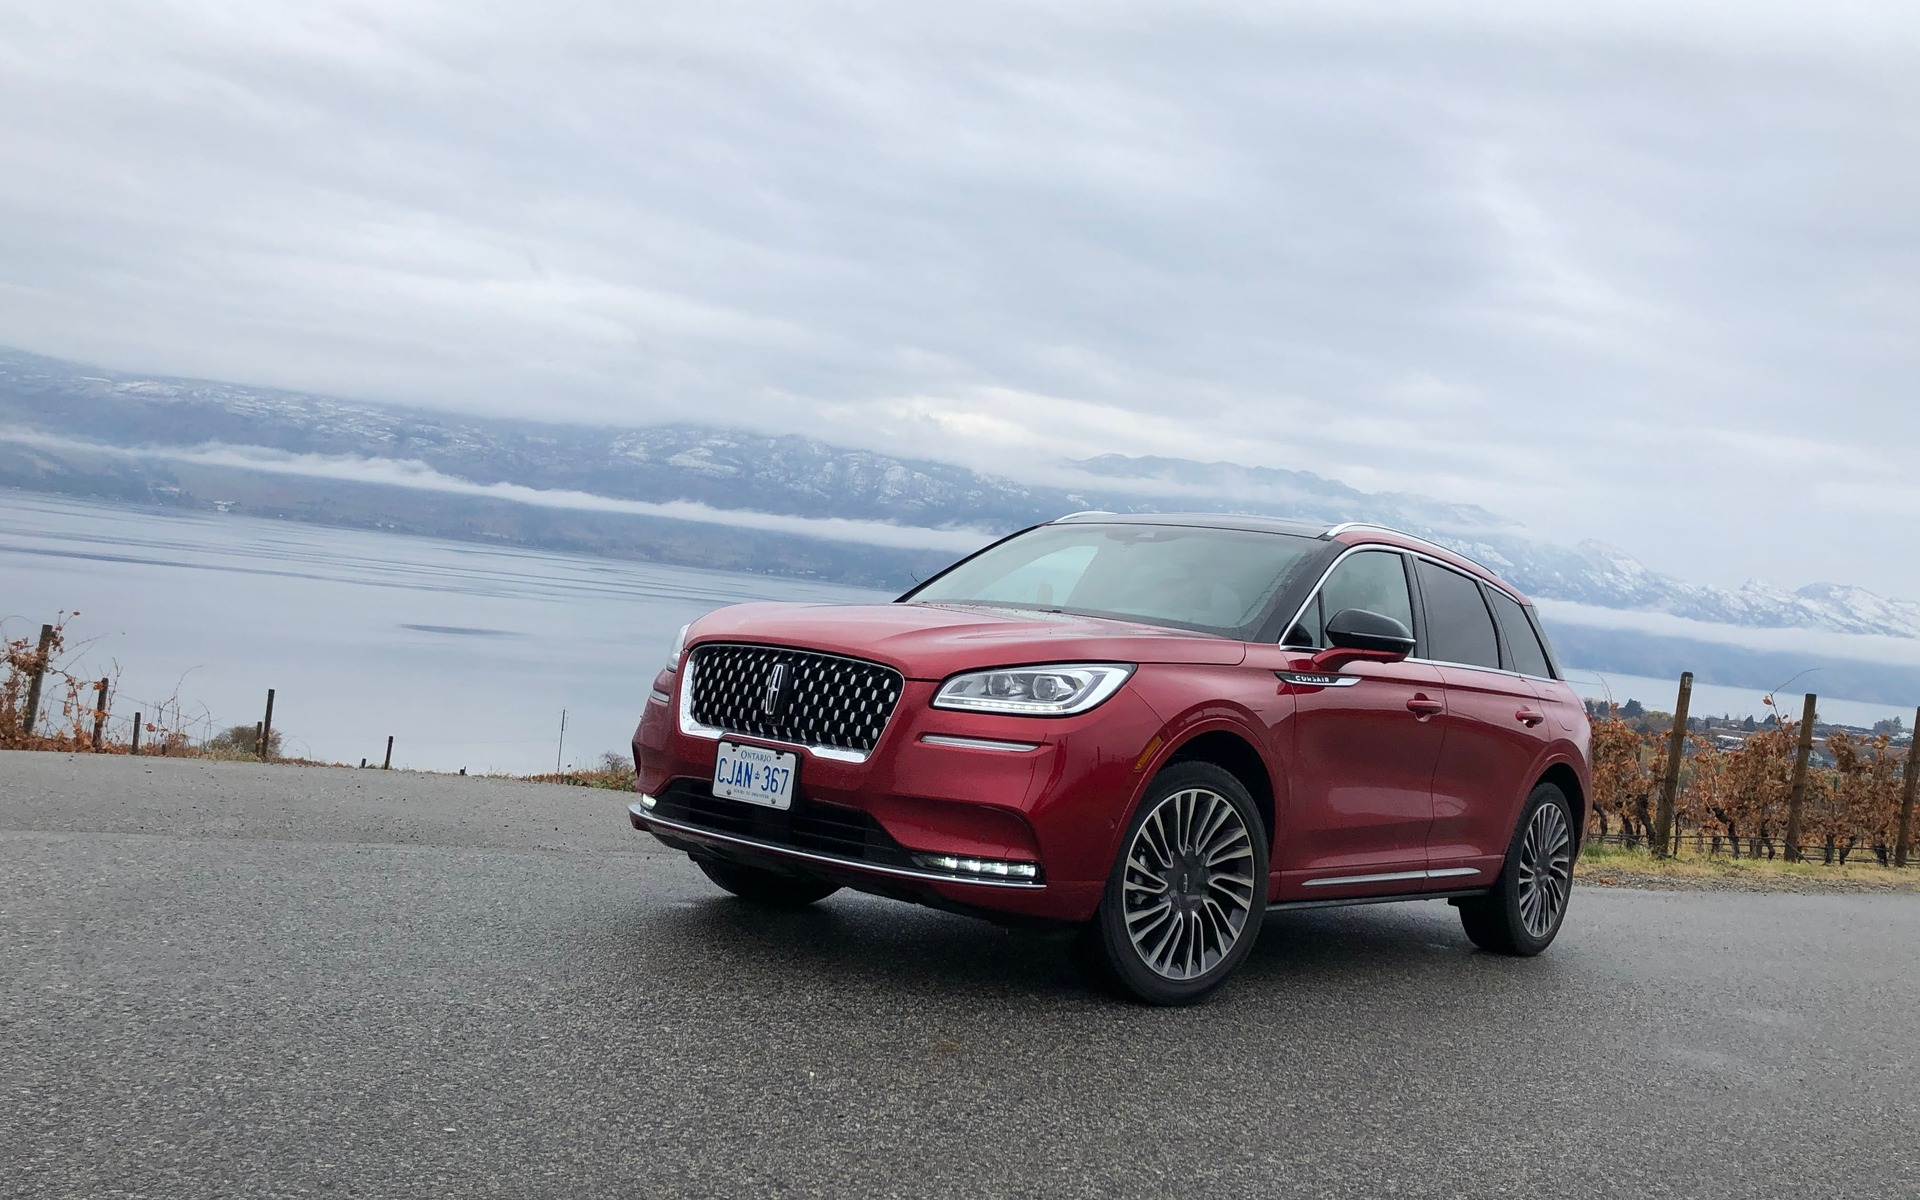 2020 Lincoln Corsair A Redesign Filled With Hope The Car Guide